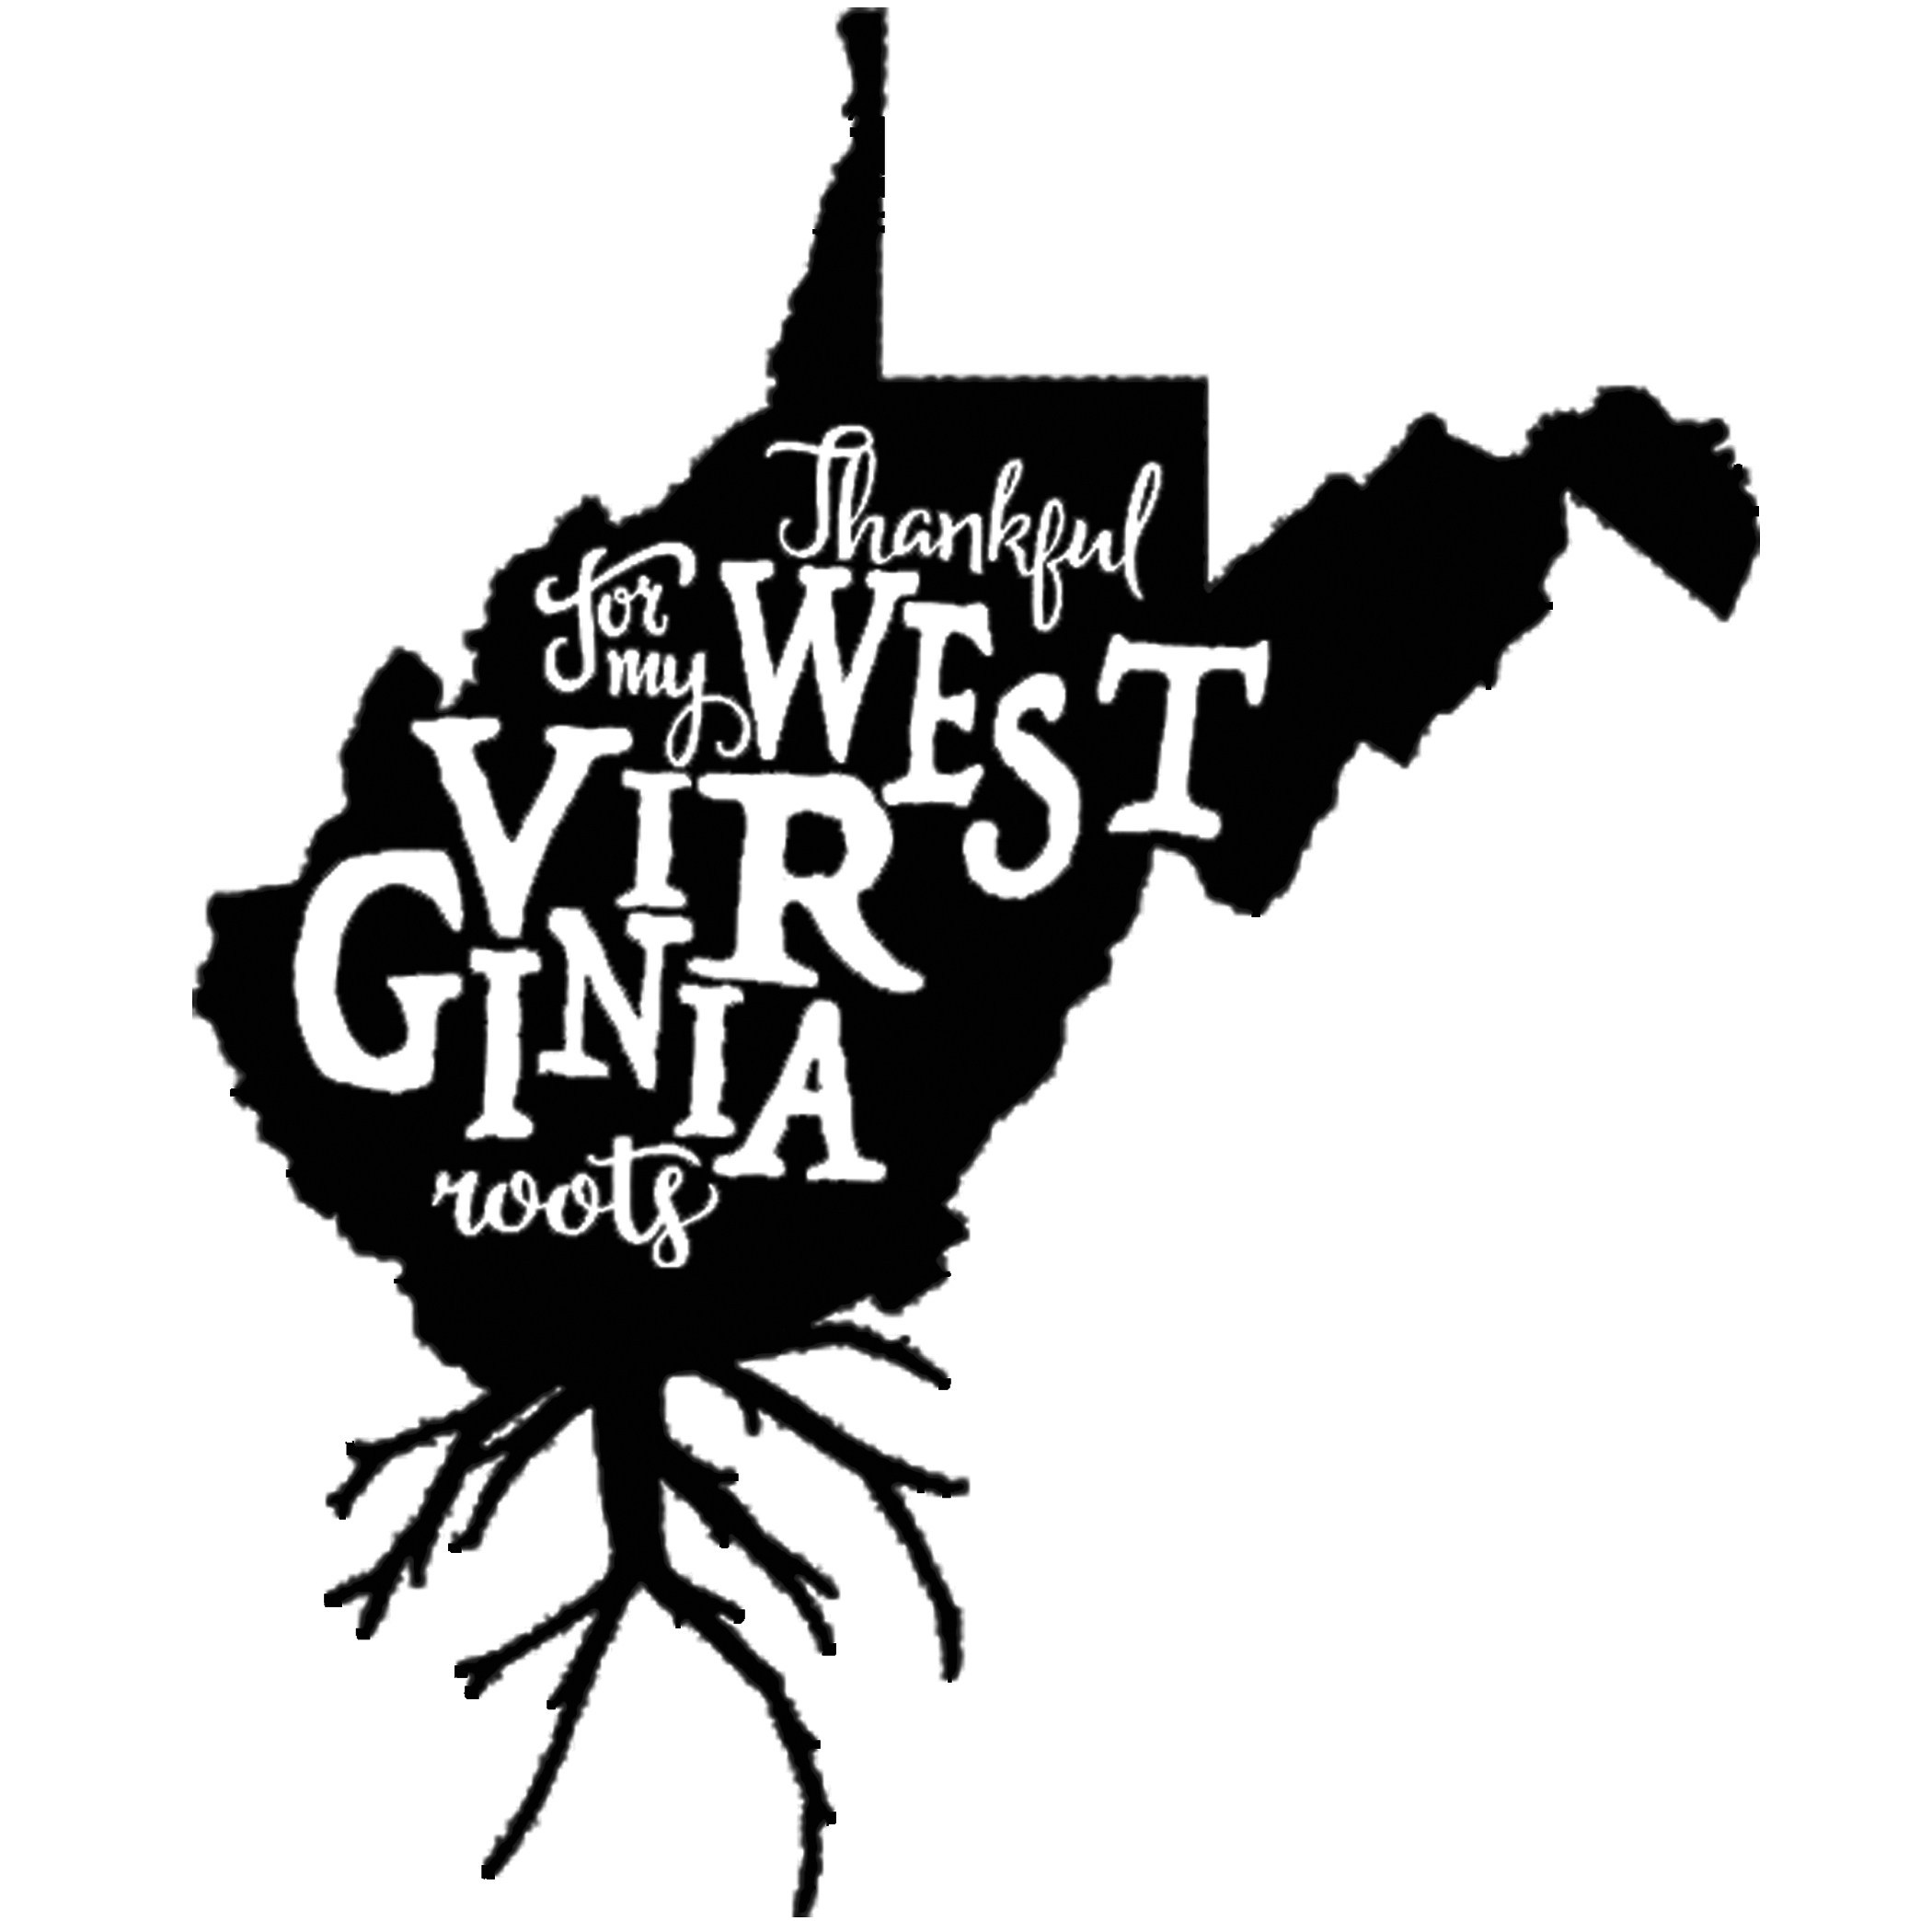 West virginia roots clipart